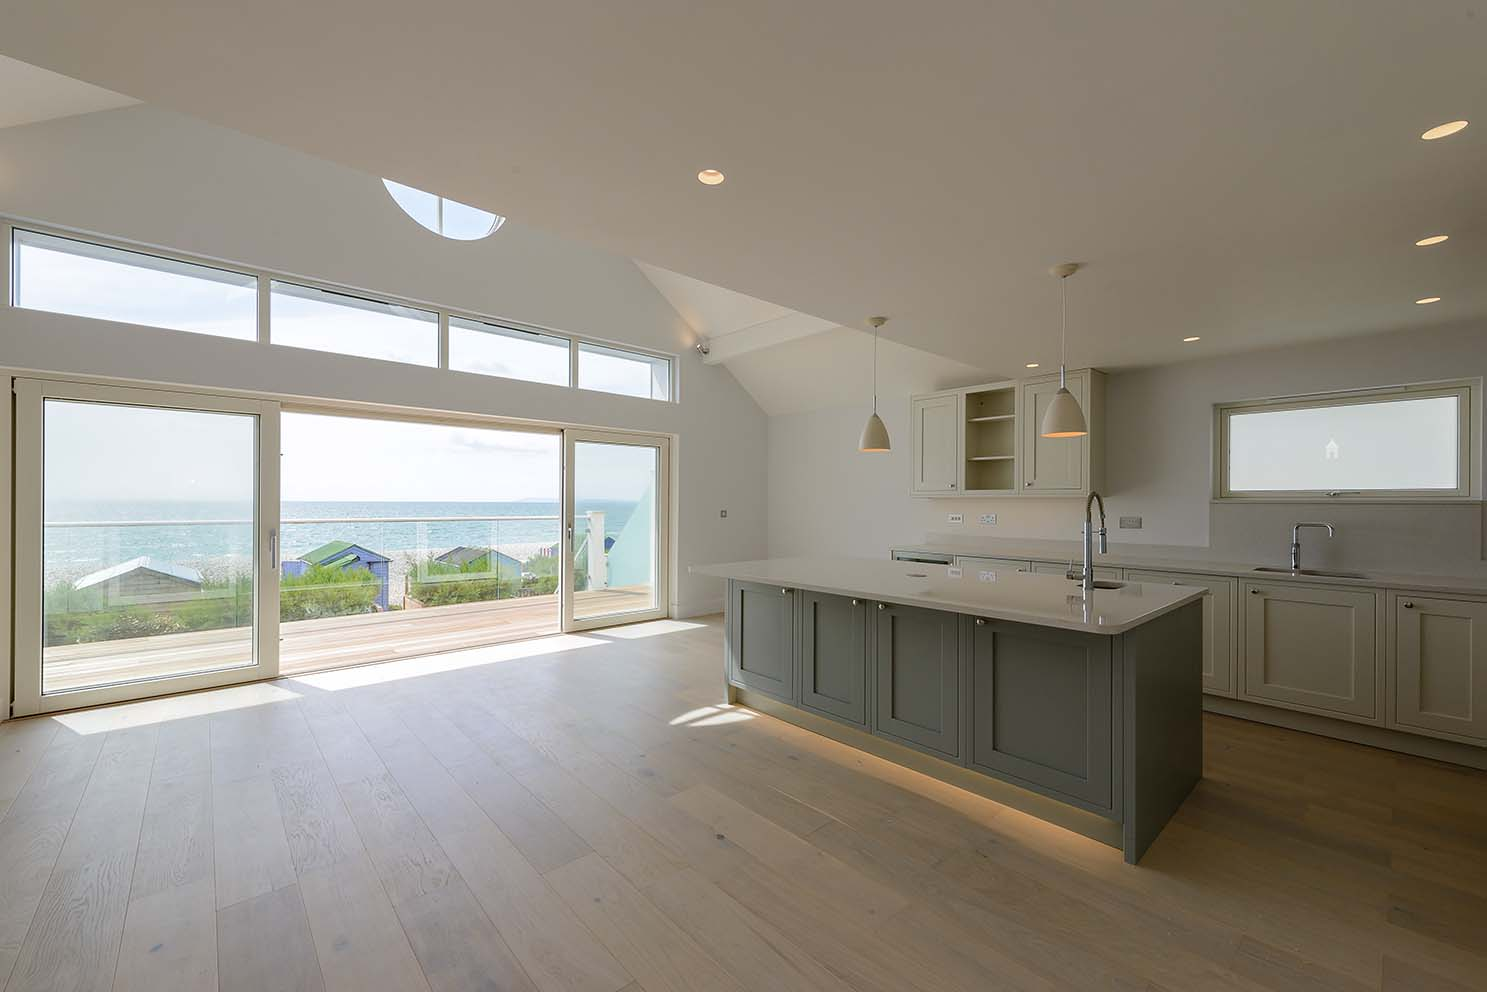 Westcoast Windows are pleased to supply their Swedish manufactured composite windows and sliding doors for the stunning 'Stargazer' project in East Wittering